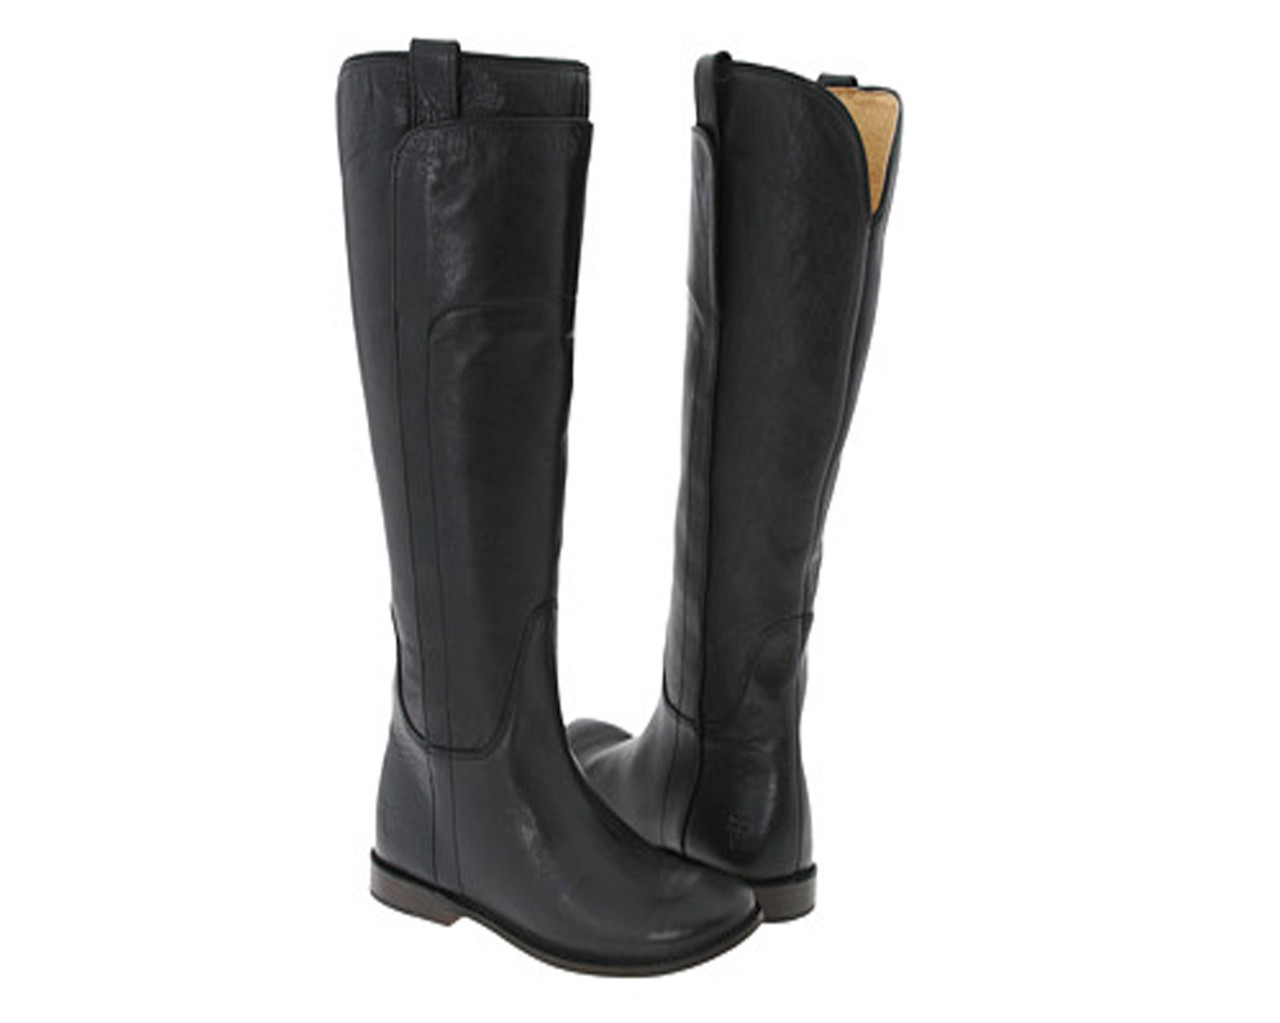 8396145057a FRYE Women's Paige Tall Riding Boot Black